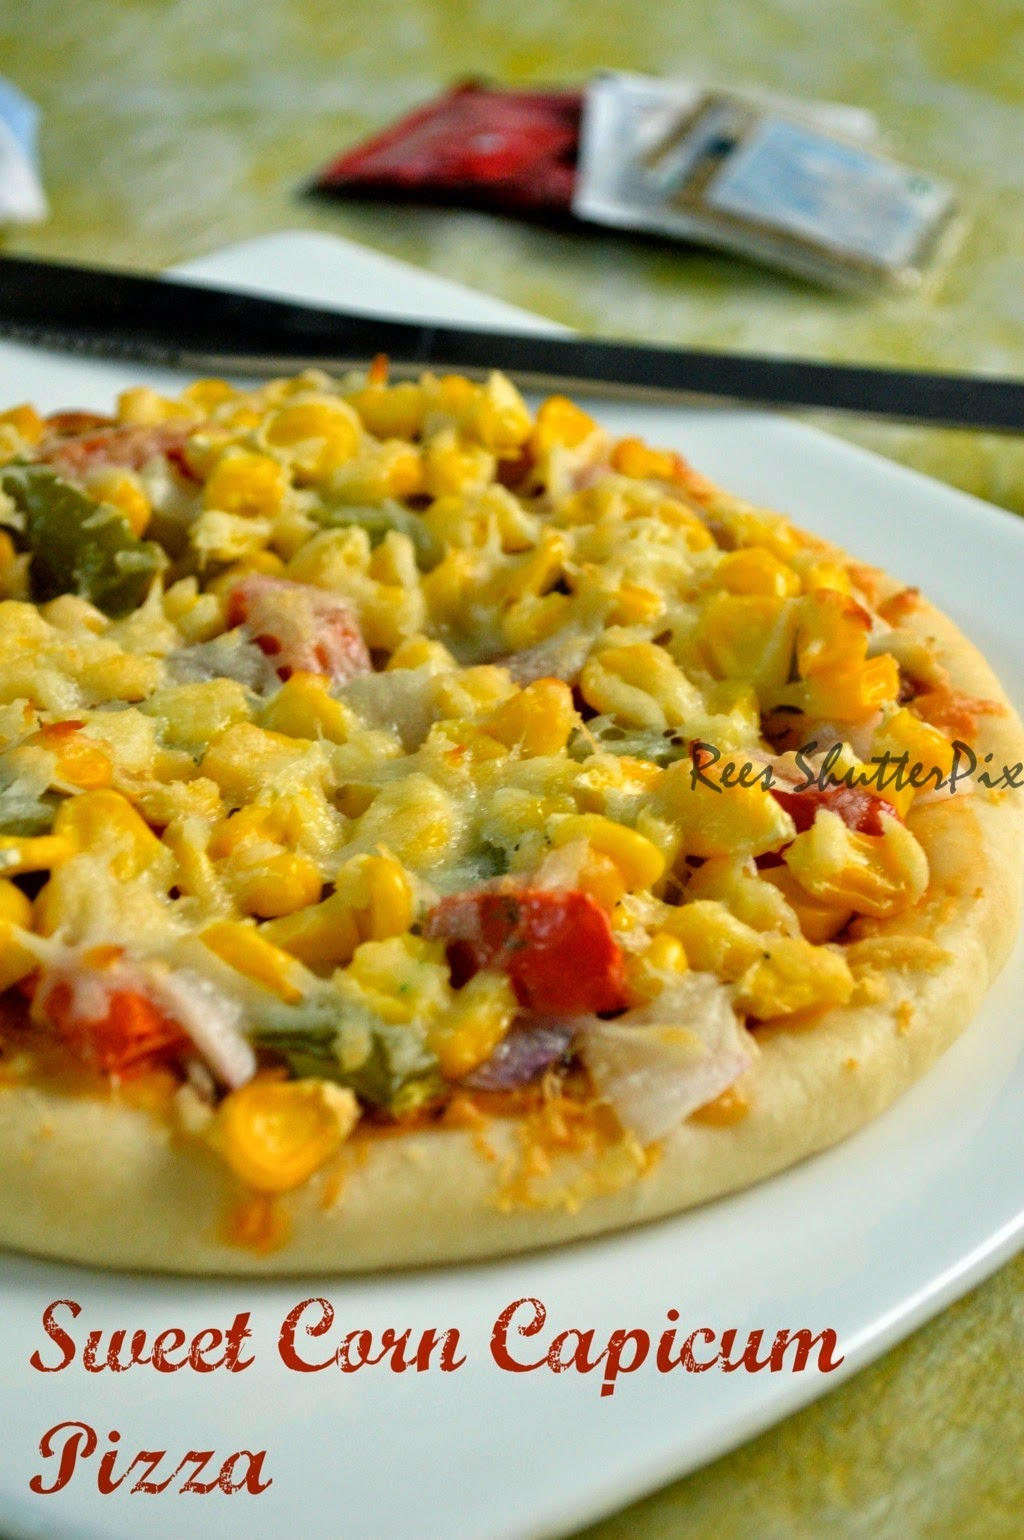 veg pizza, sweet corn capcicum pizza, step by step picture pizza recipe, pizza base, pizza sauce